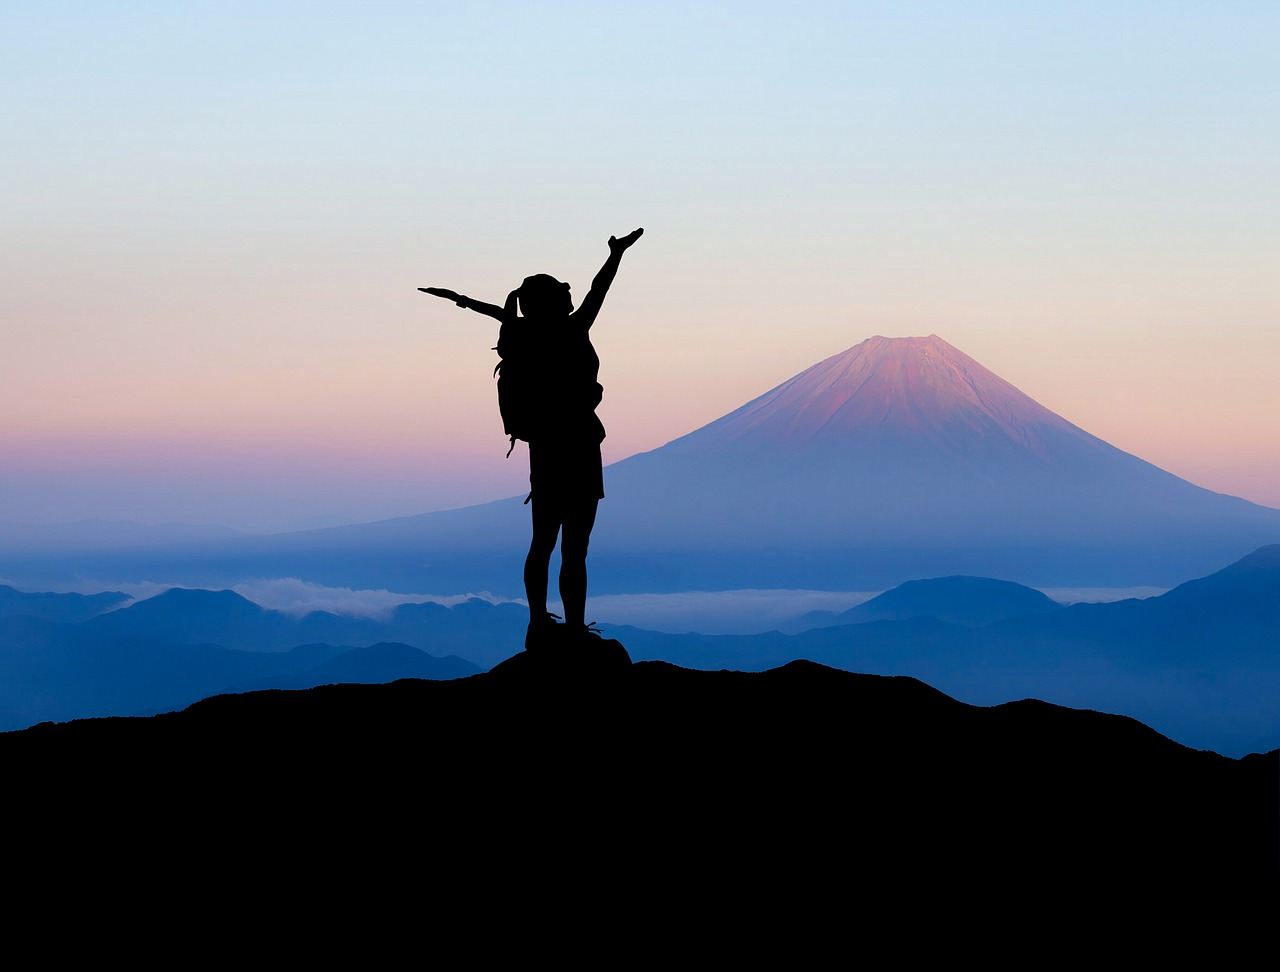 Silhouette of a girl at the top of the mountain